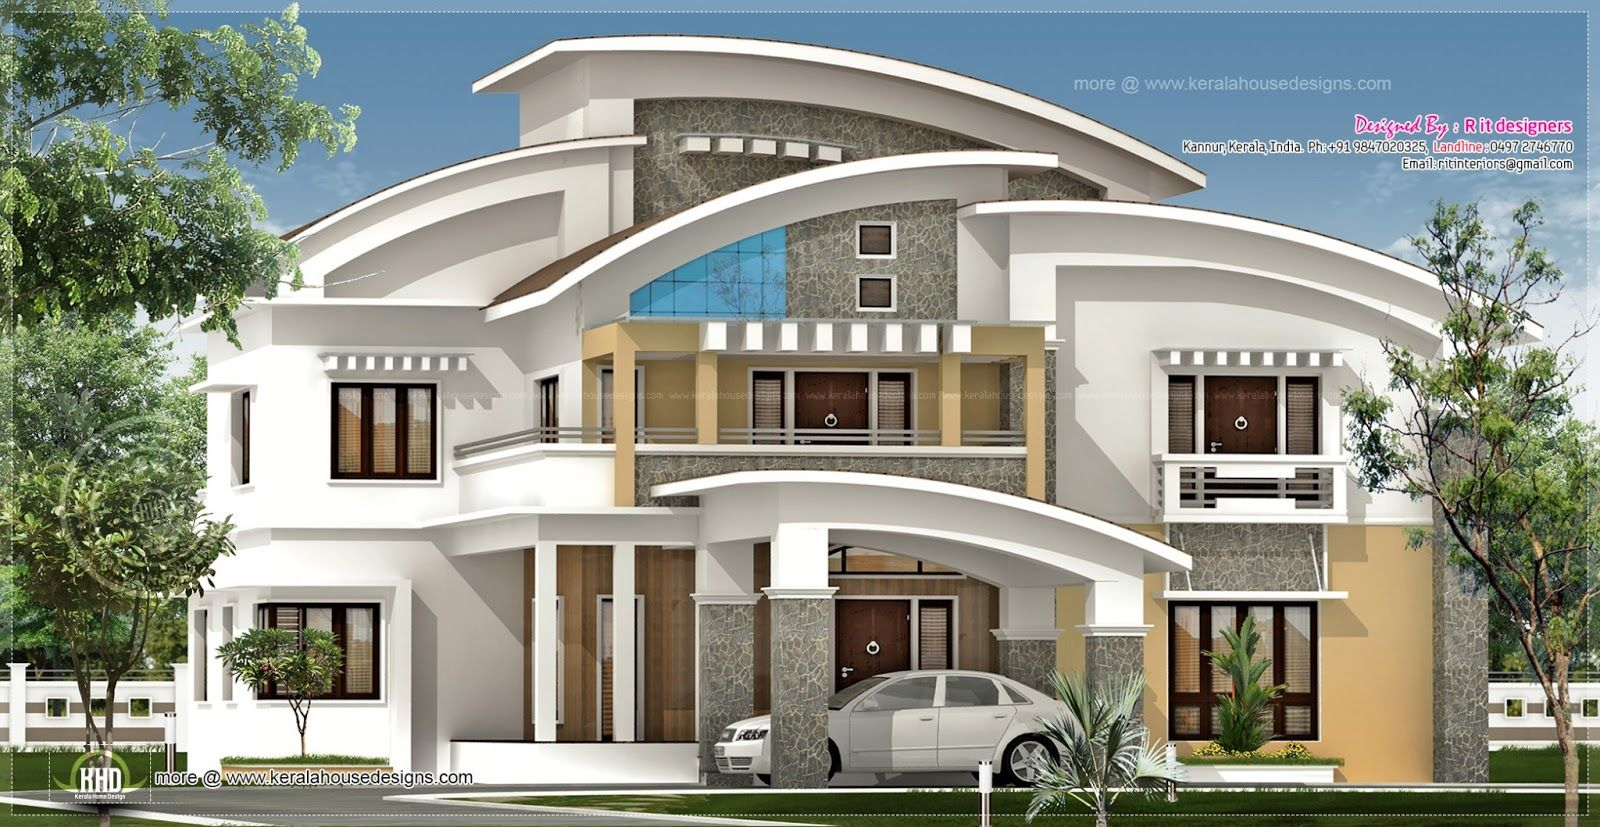 Awesome luxury homes plans 8 french country luxury home for Modern luxury house design